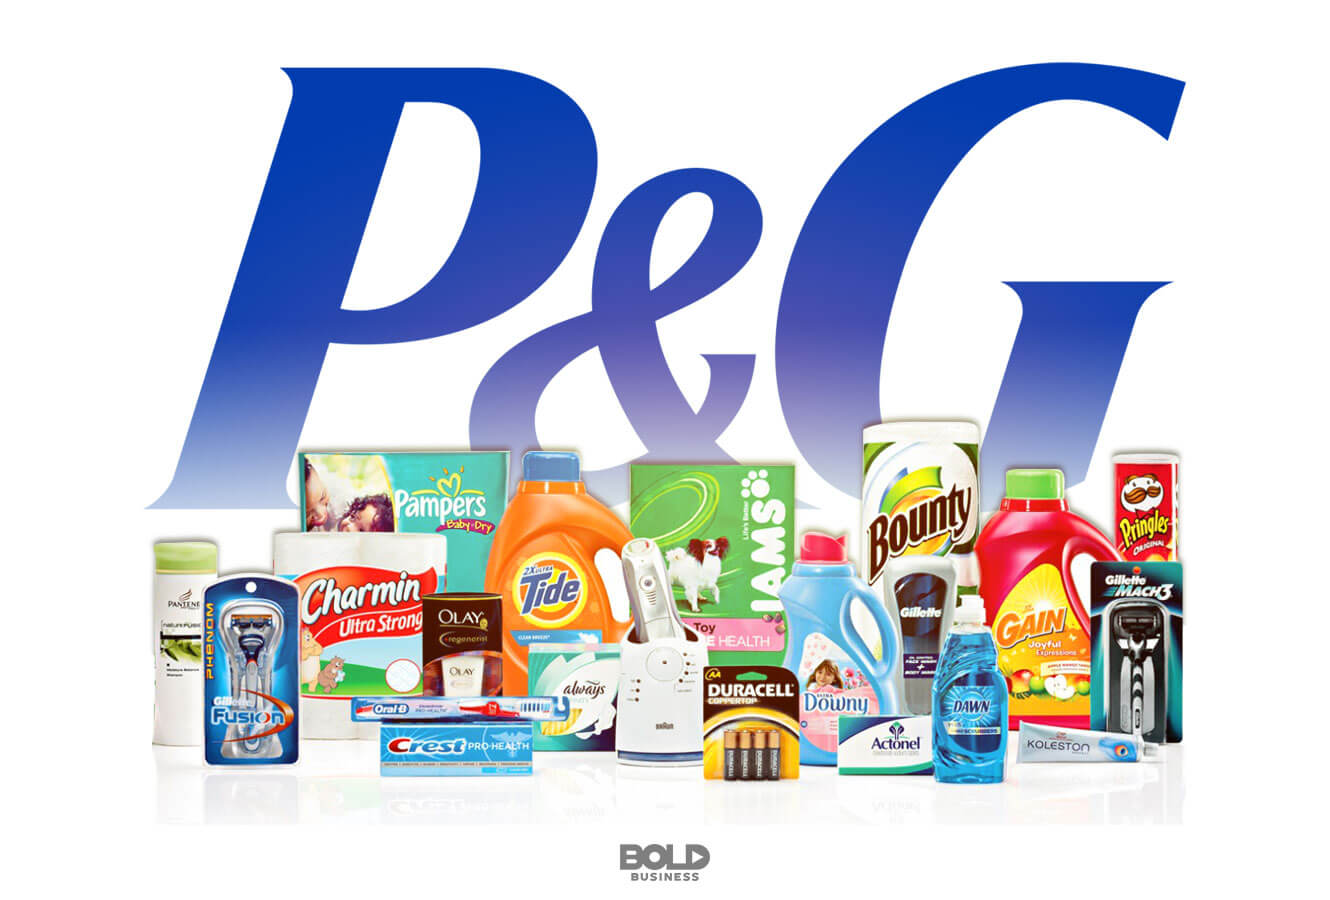 logo of P&G with a display of its products in front, what will be the next procter and gamble innovation strategy?